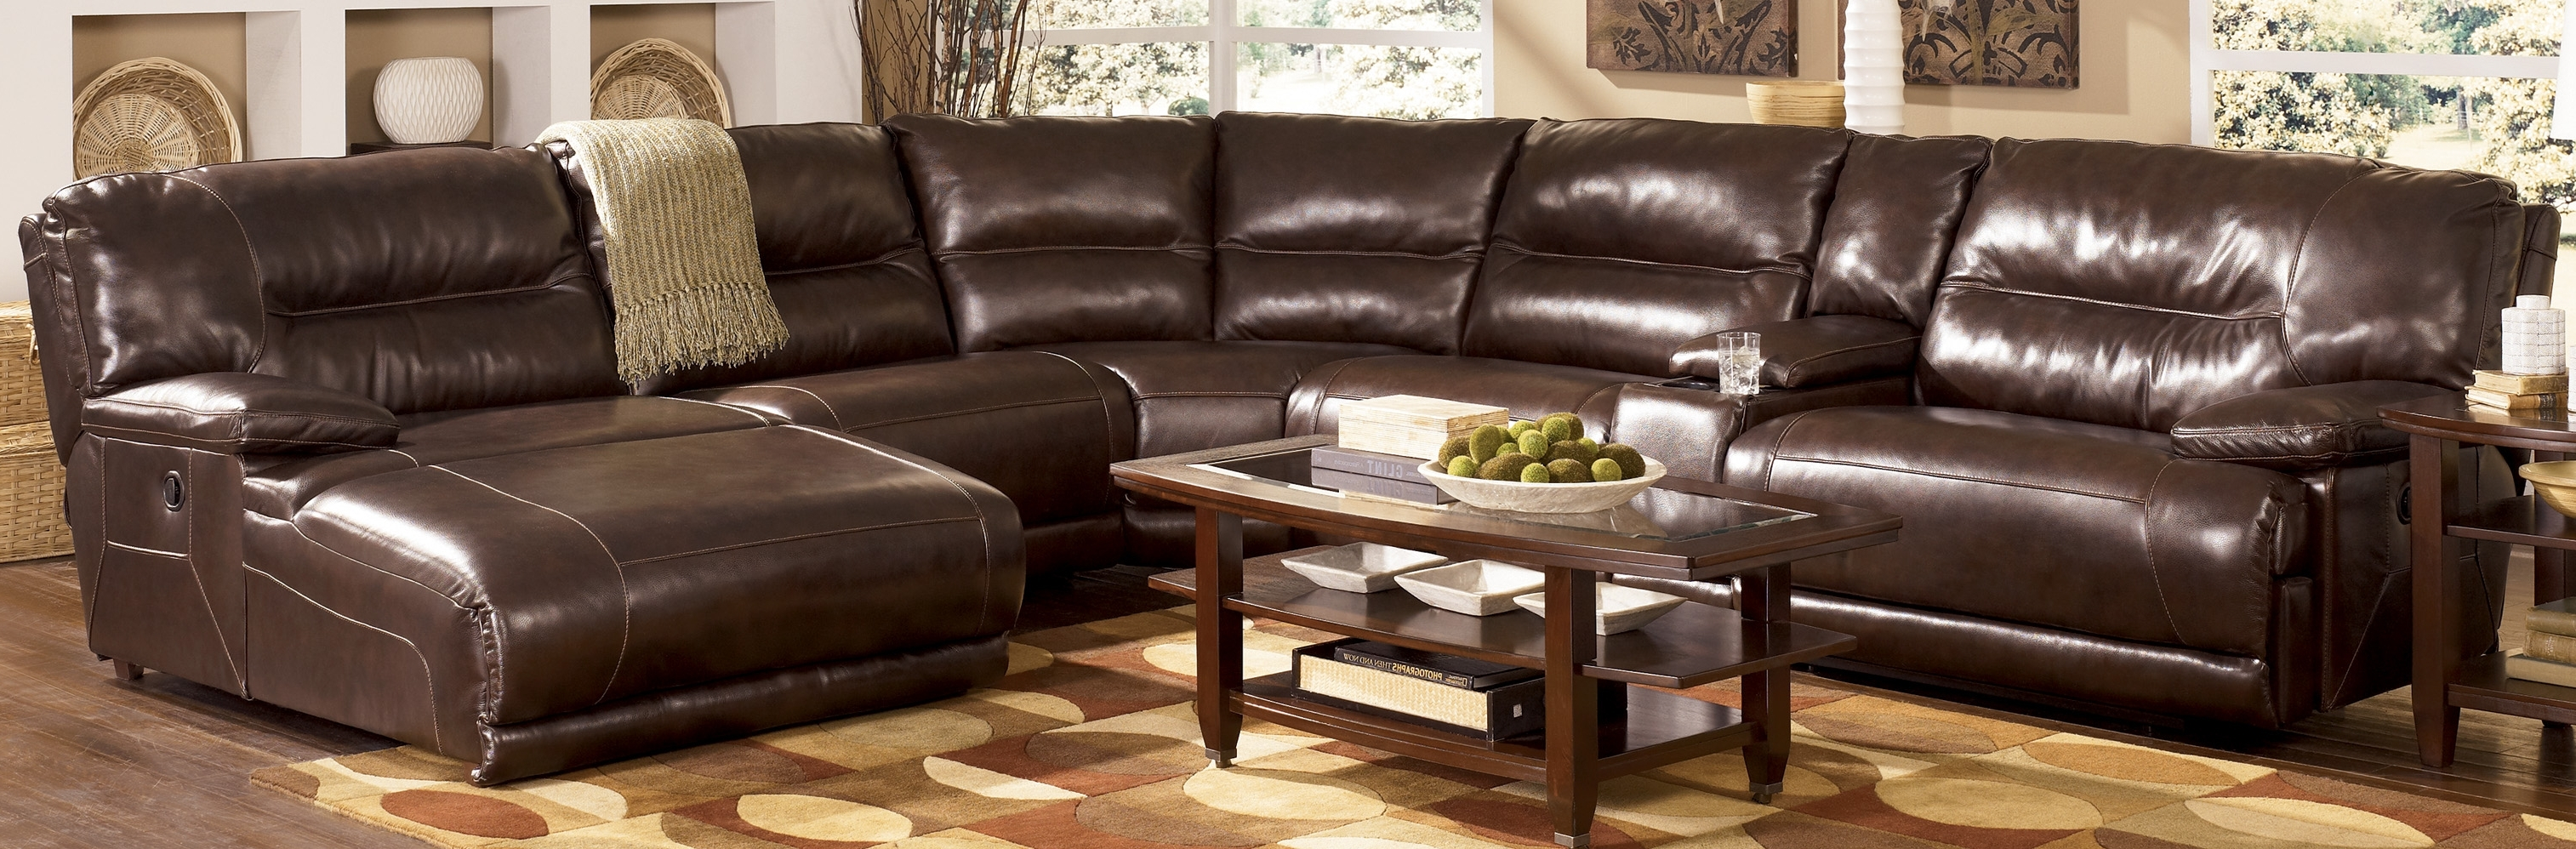 Genuine Leather Sectionals With Chaise Intended For Most Popular Faux Leather Sectional Sofa With Chaise (Gallery 7 of 15)